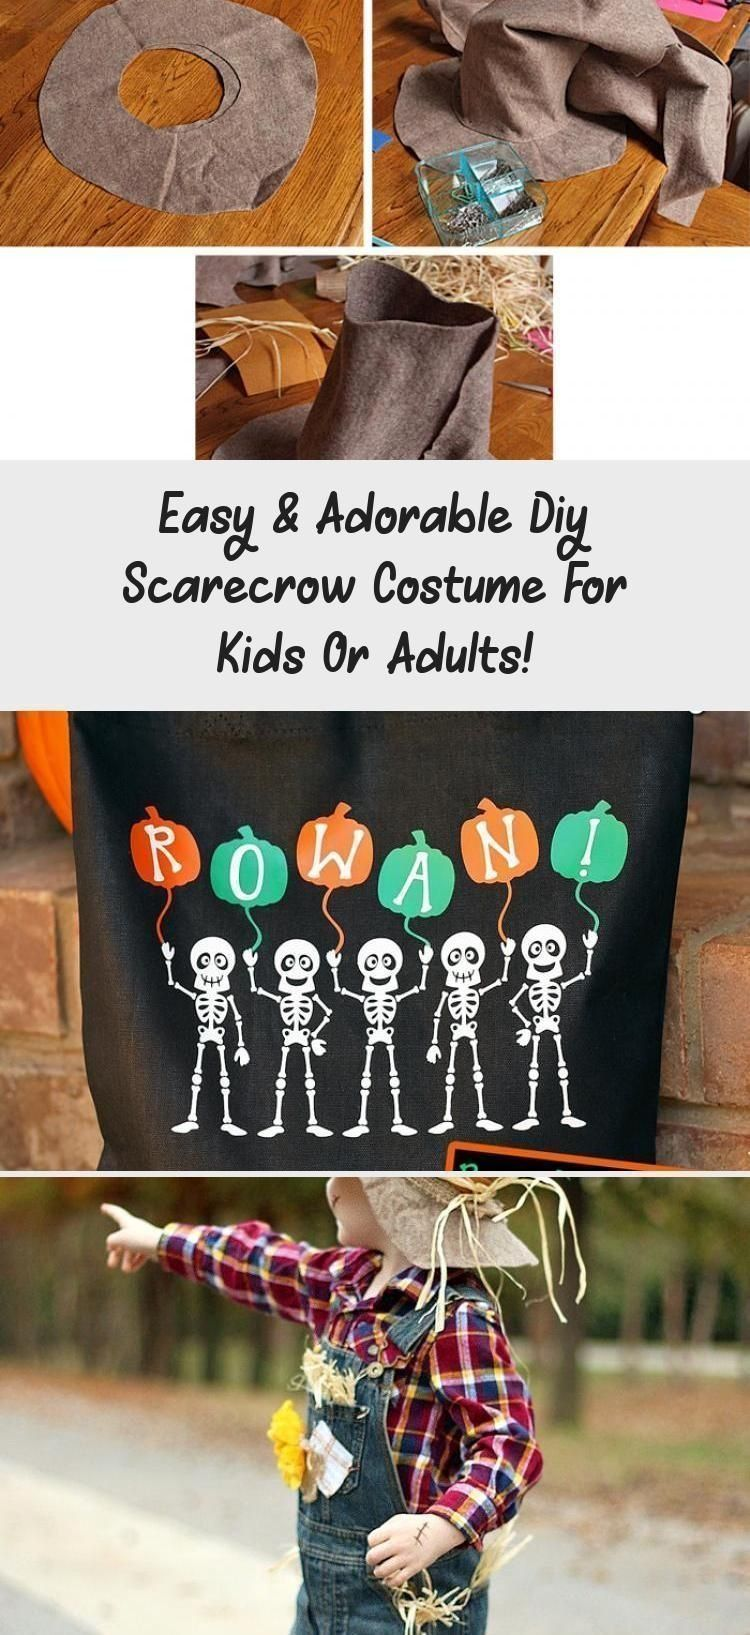 Easy & Adorable Diy Scarecrow Costume For Kids Or Adults! Learn how to make this DIY Scarecrow Costume th Easy & Adorable Diy Scarecrow Costume For Kids Or Adults! Learn how to make this DIY Scarecrow Costume that works great for toddlers, kids, & adults! | Where The Smiles Have Been Easy & Adorable Diy Scarecrow Costume For Kids Or Adults! Learn how to make this DIY Scarecrow Costume th | family halloween costumes with baby and toddler fun #scarecrowcostumediy #Halloween #costume #Halloweencost